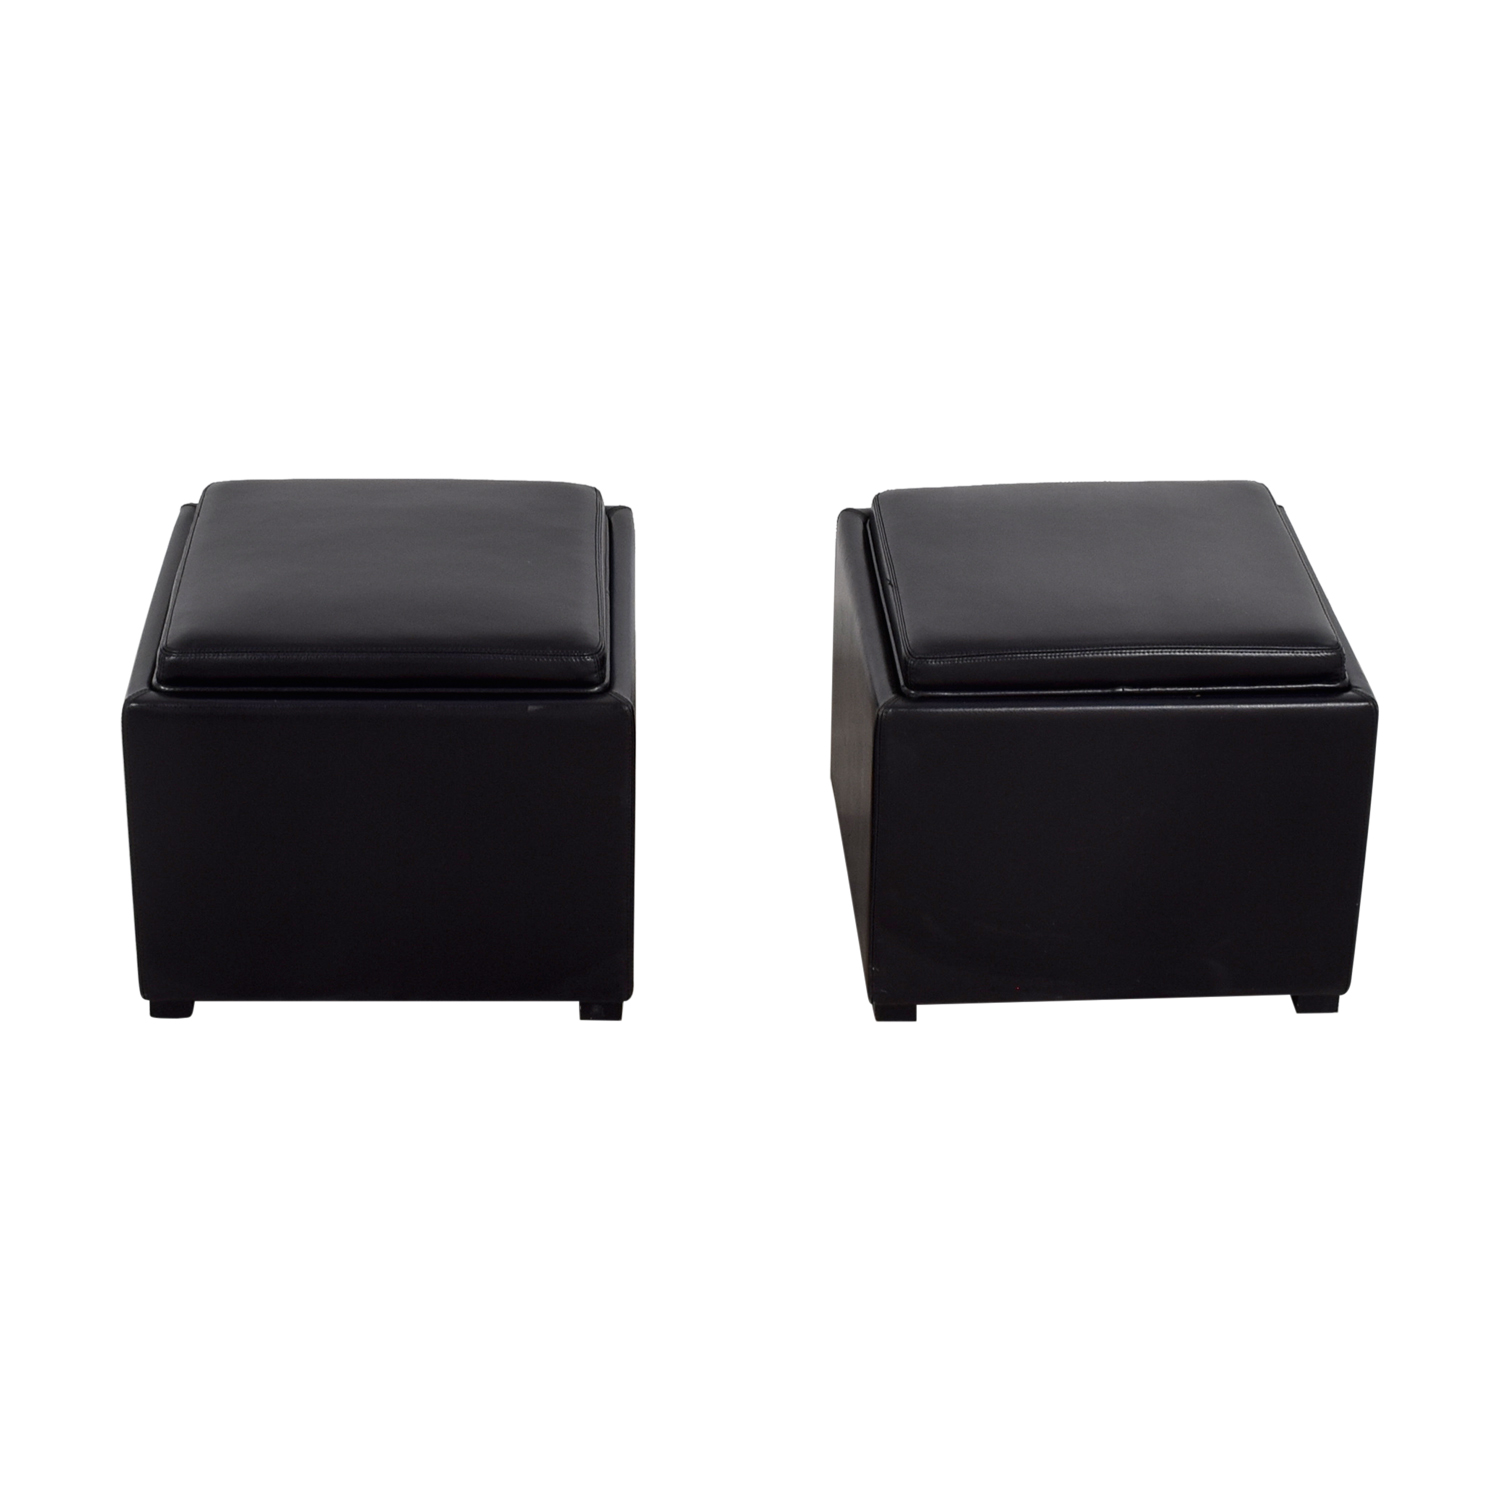 Crate & Barrel Crate & Barrel Black Tray Ottomons Ottomans